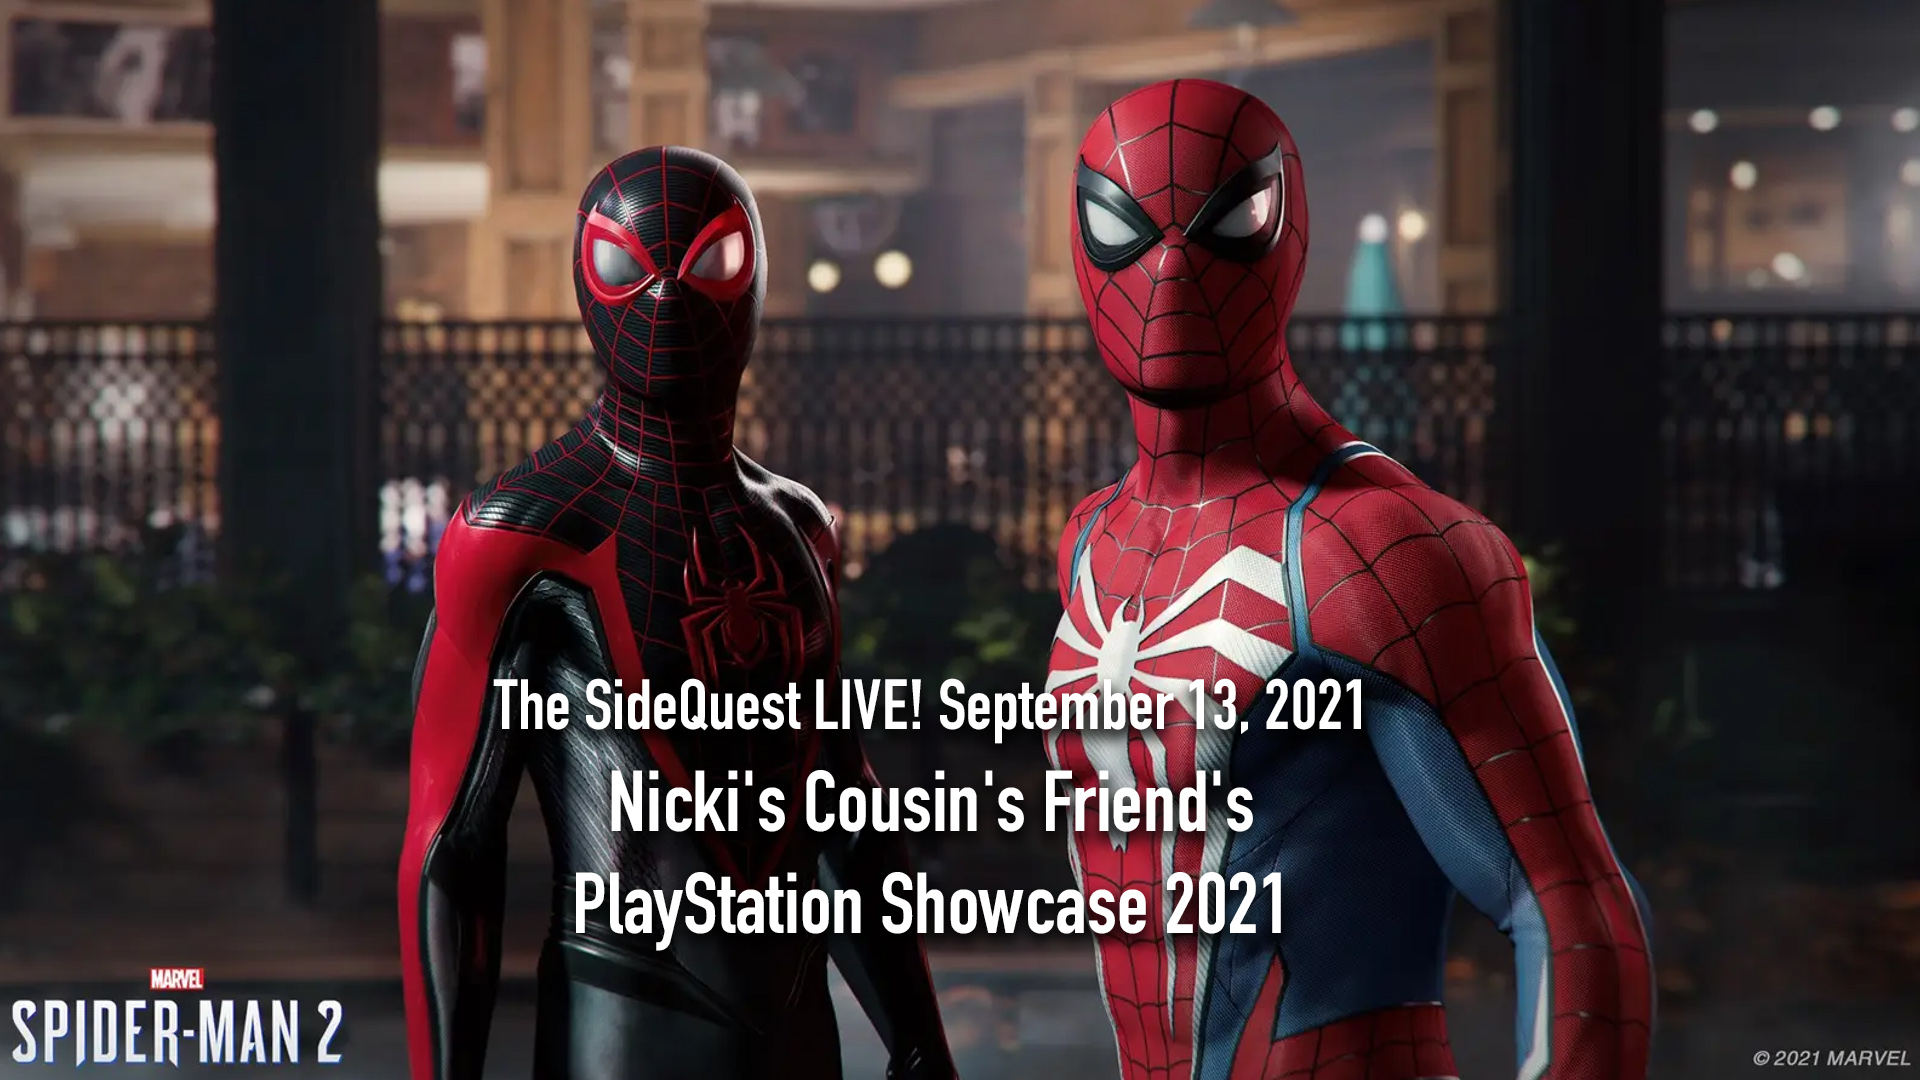 The SideQuest LIVE September 13, 2021: Nicki's Cousin's Friend's PlayStation Showcase 2021